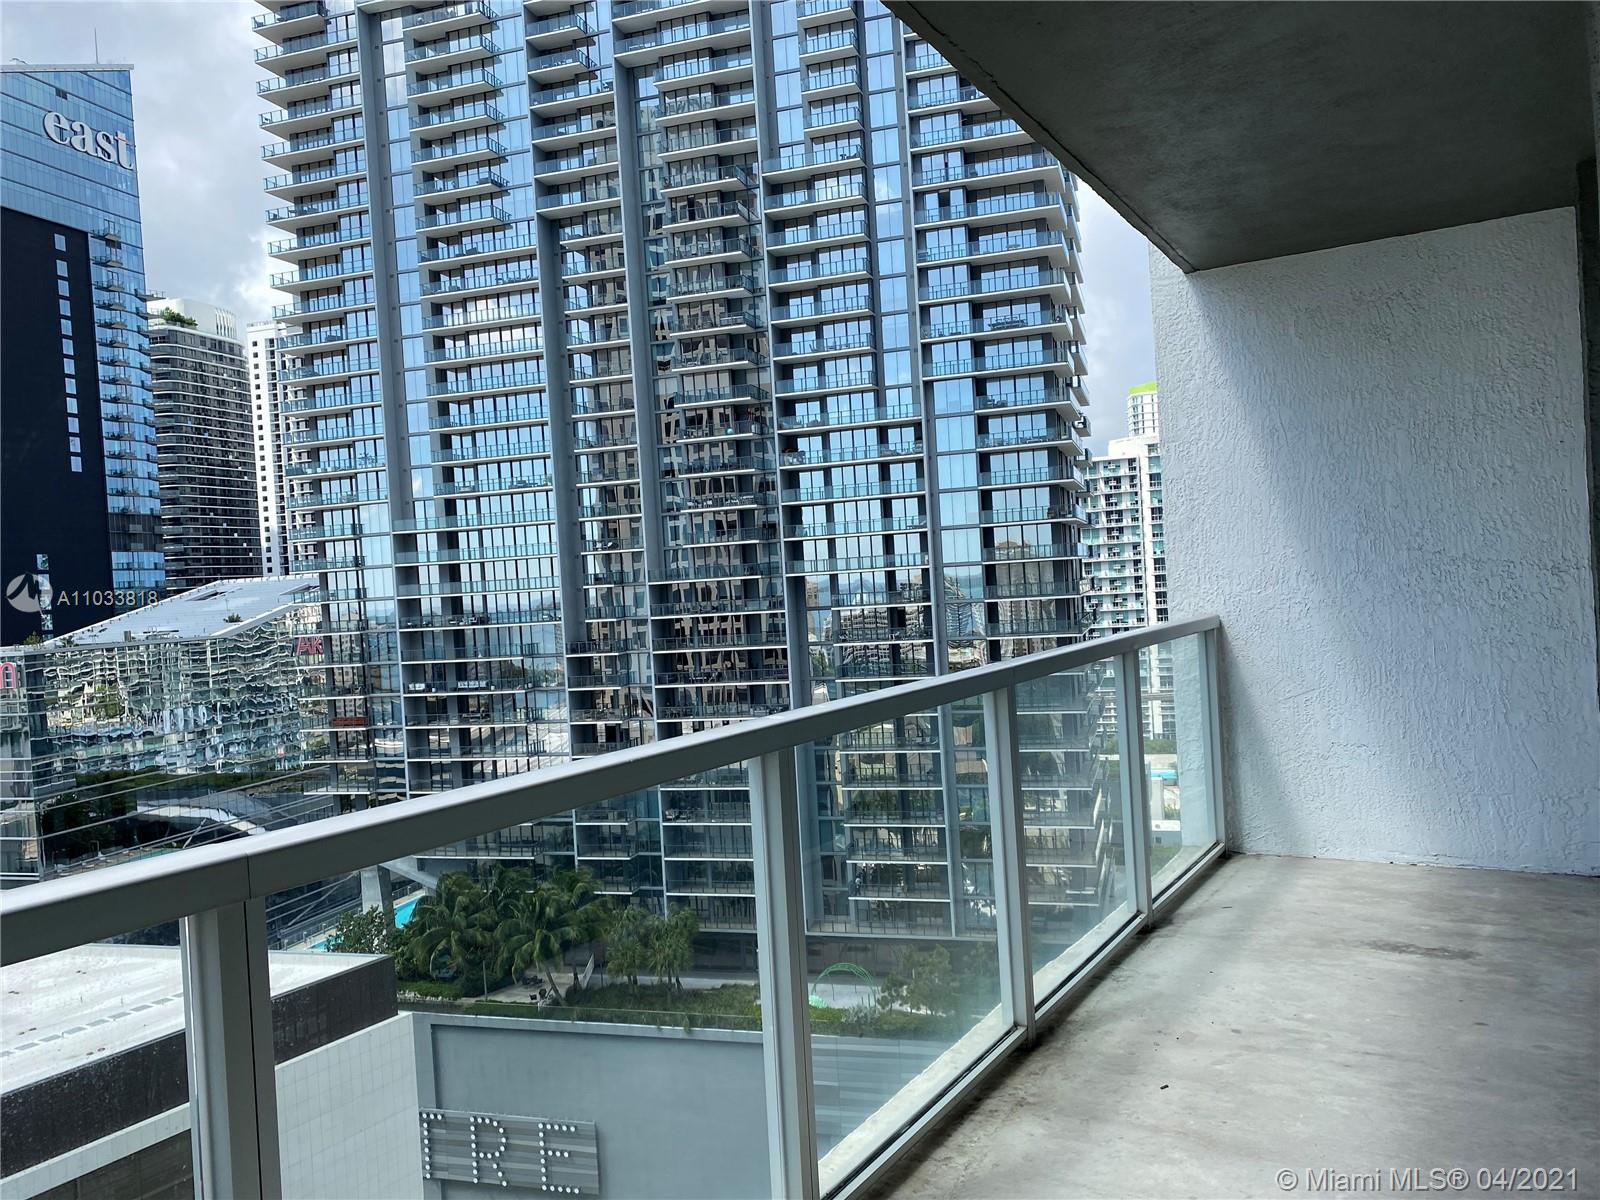 500 Brickell East Tower #2306 - 55 SE 6th St #2306, Miami, FL 33131